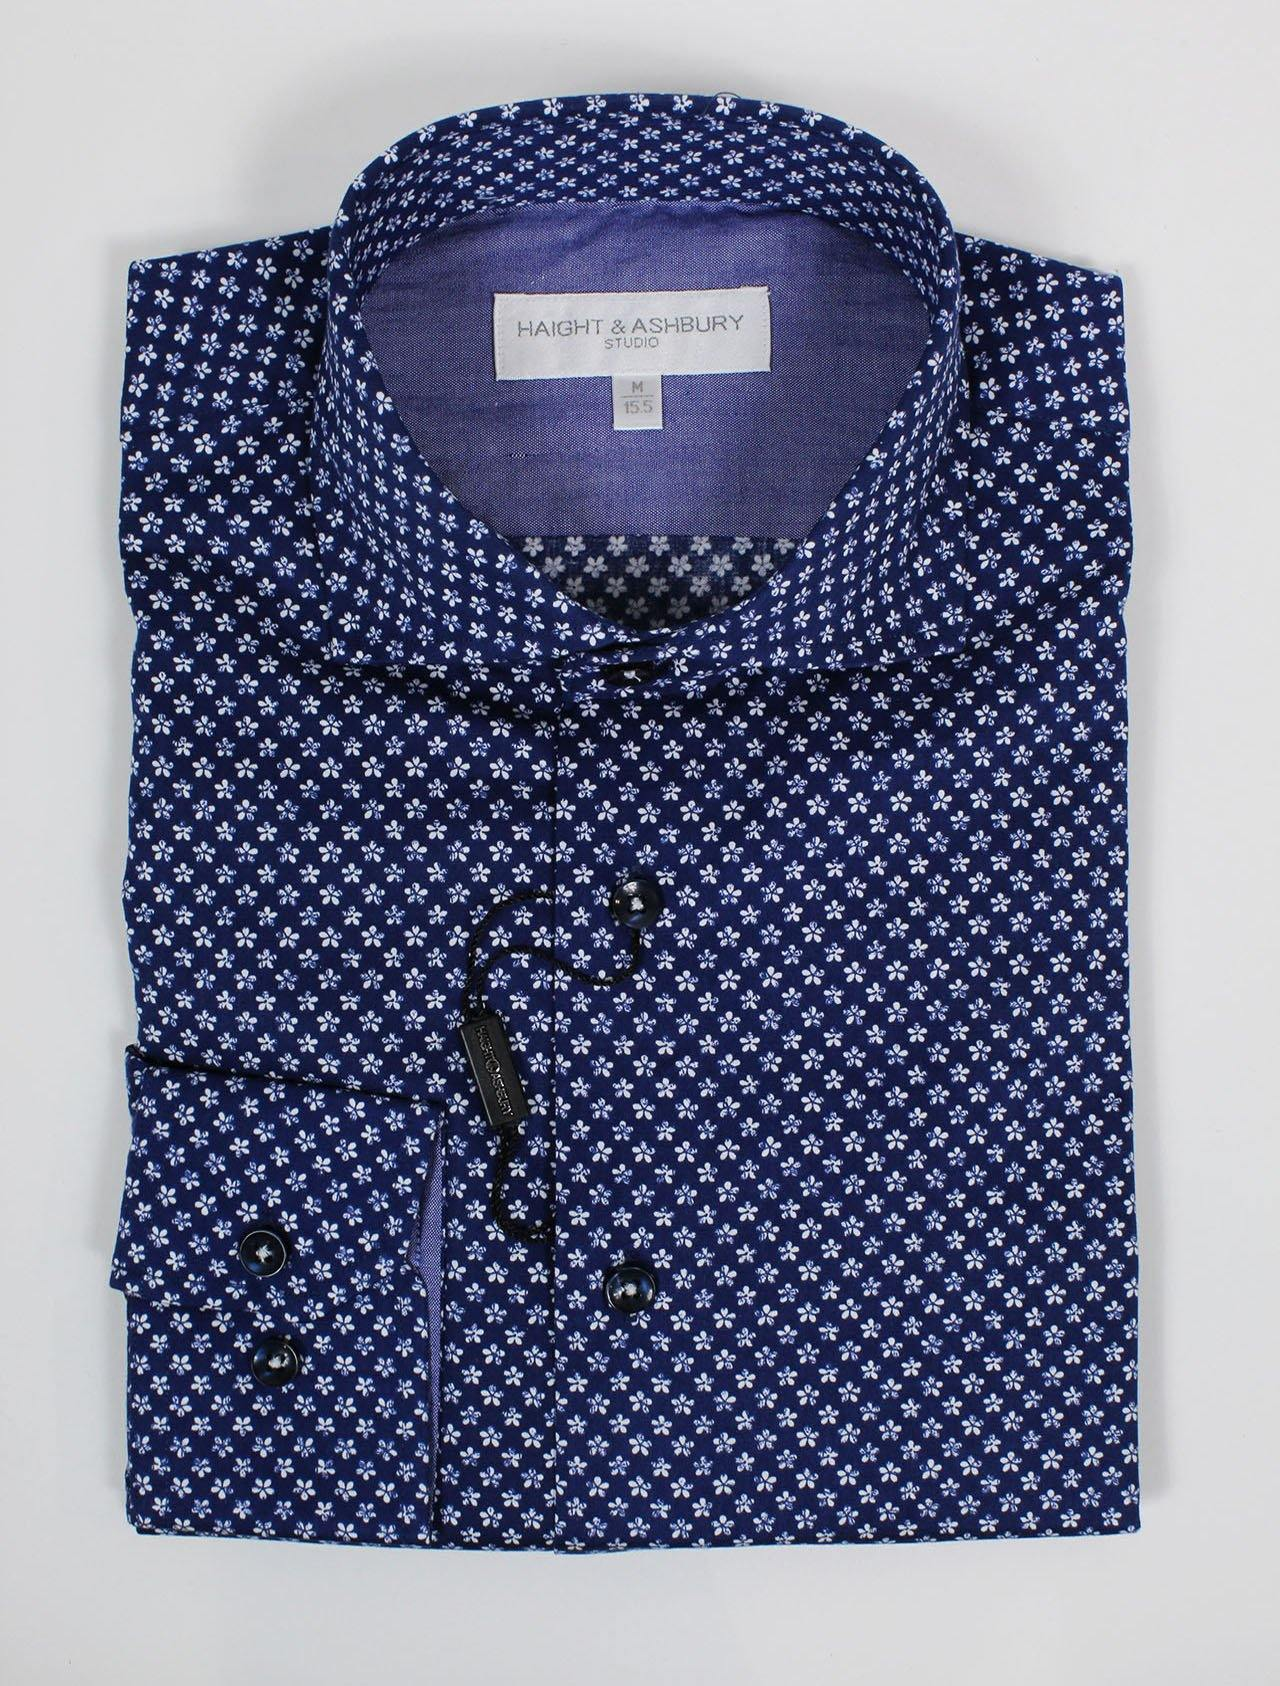 Chelsea Shirt - Haight & Ashbury